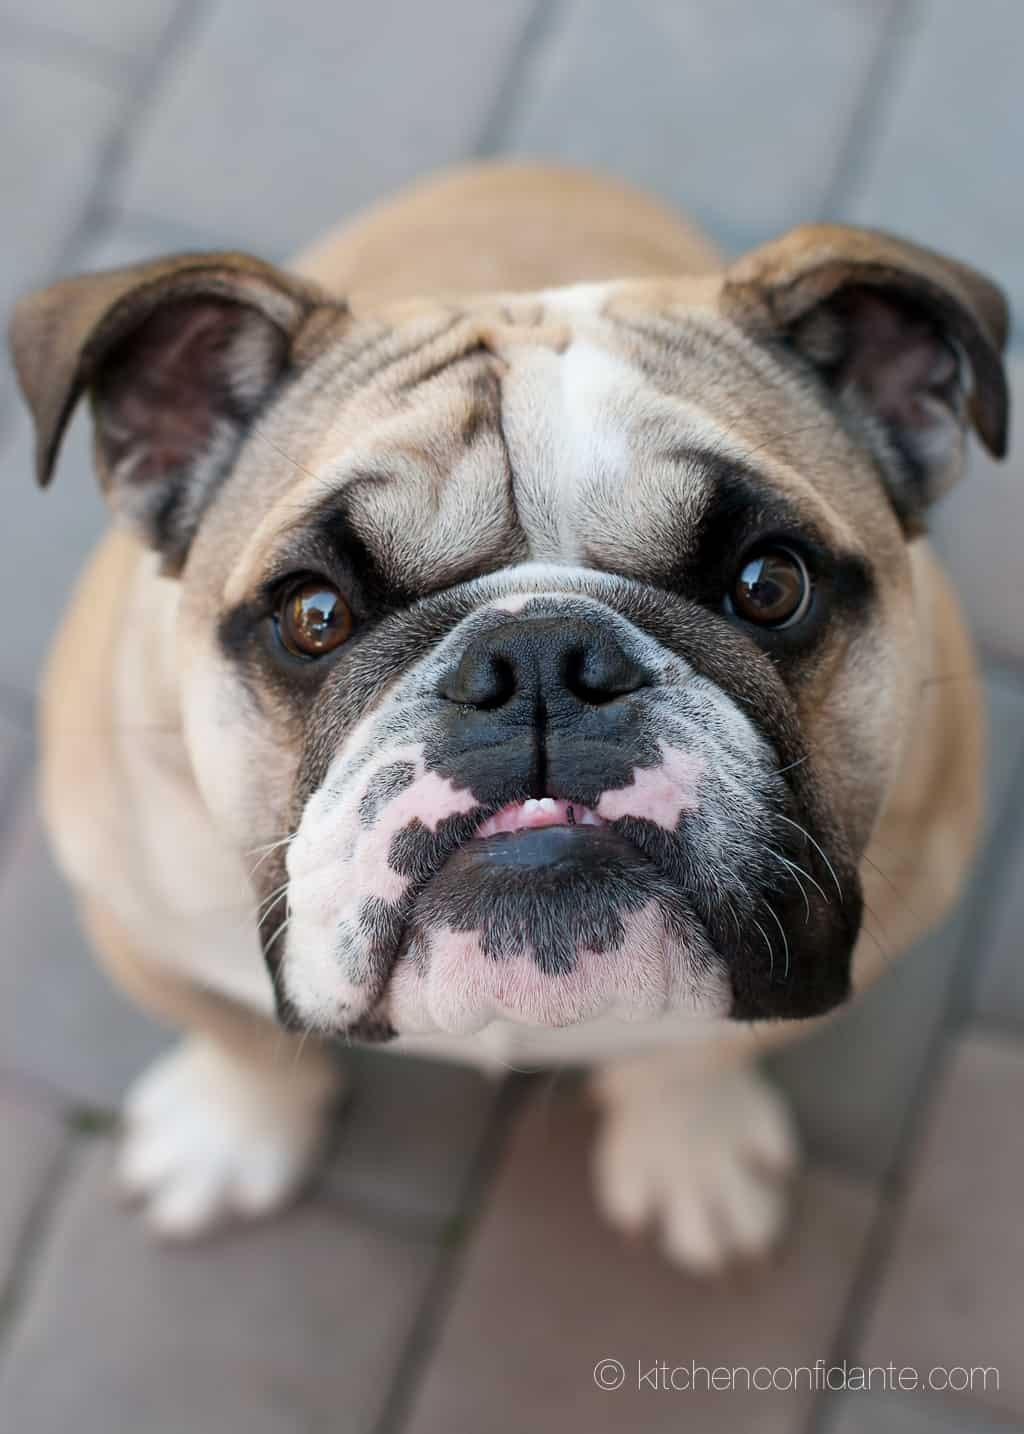 Close-up of English Bulldog's face